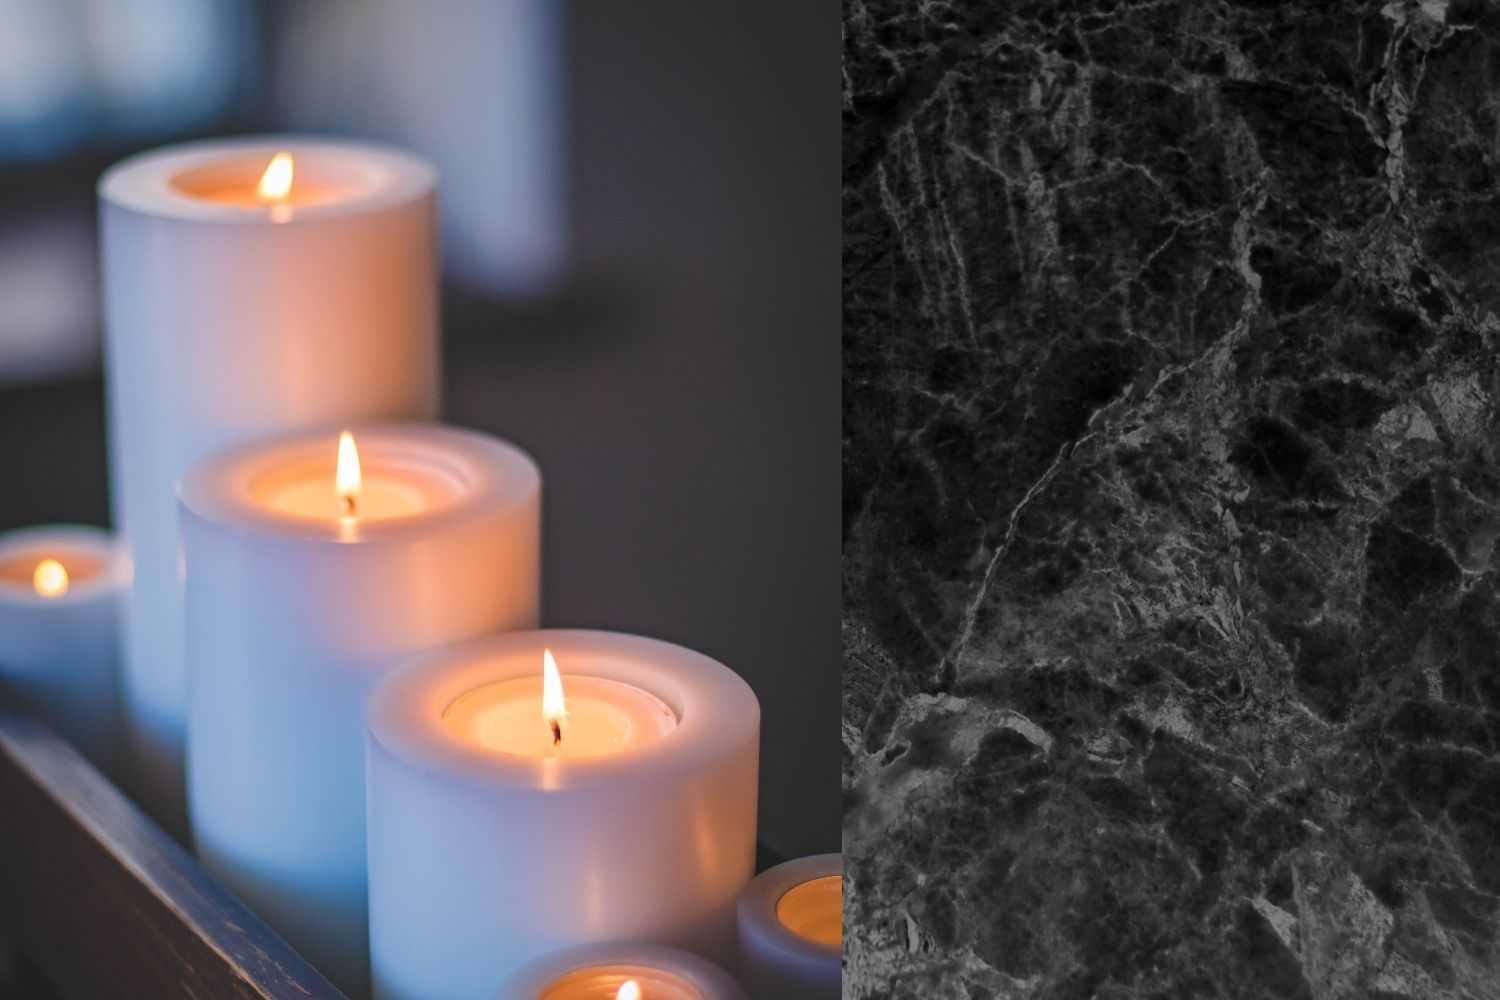 Candles image design by Canva